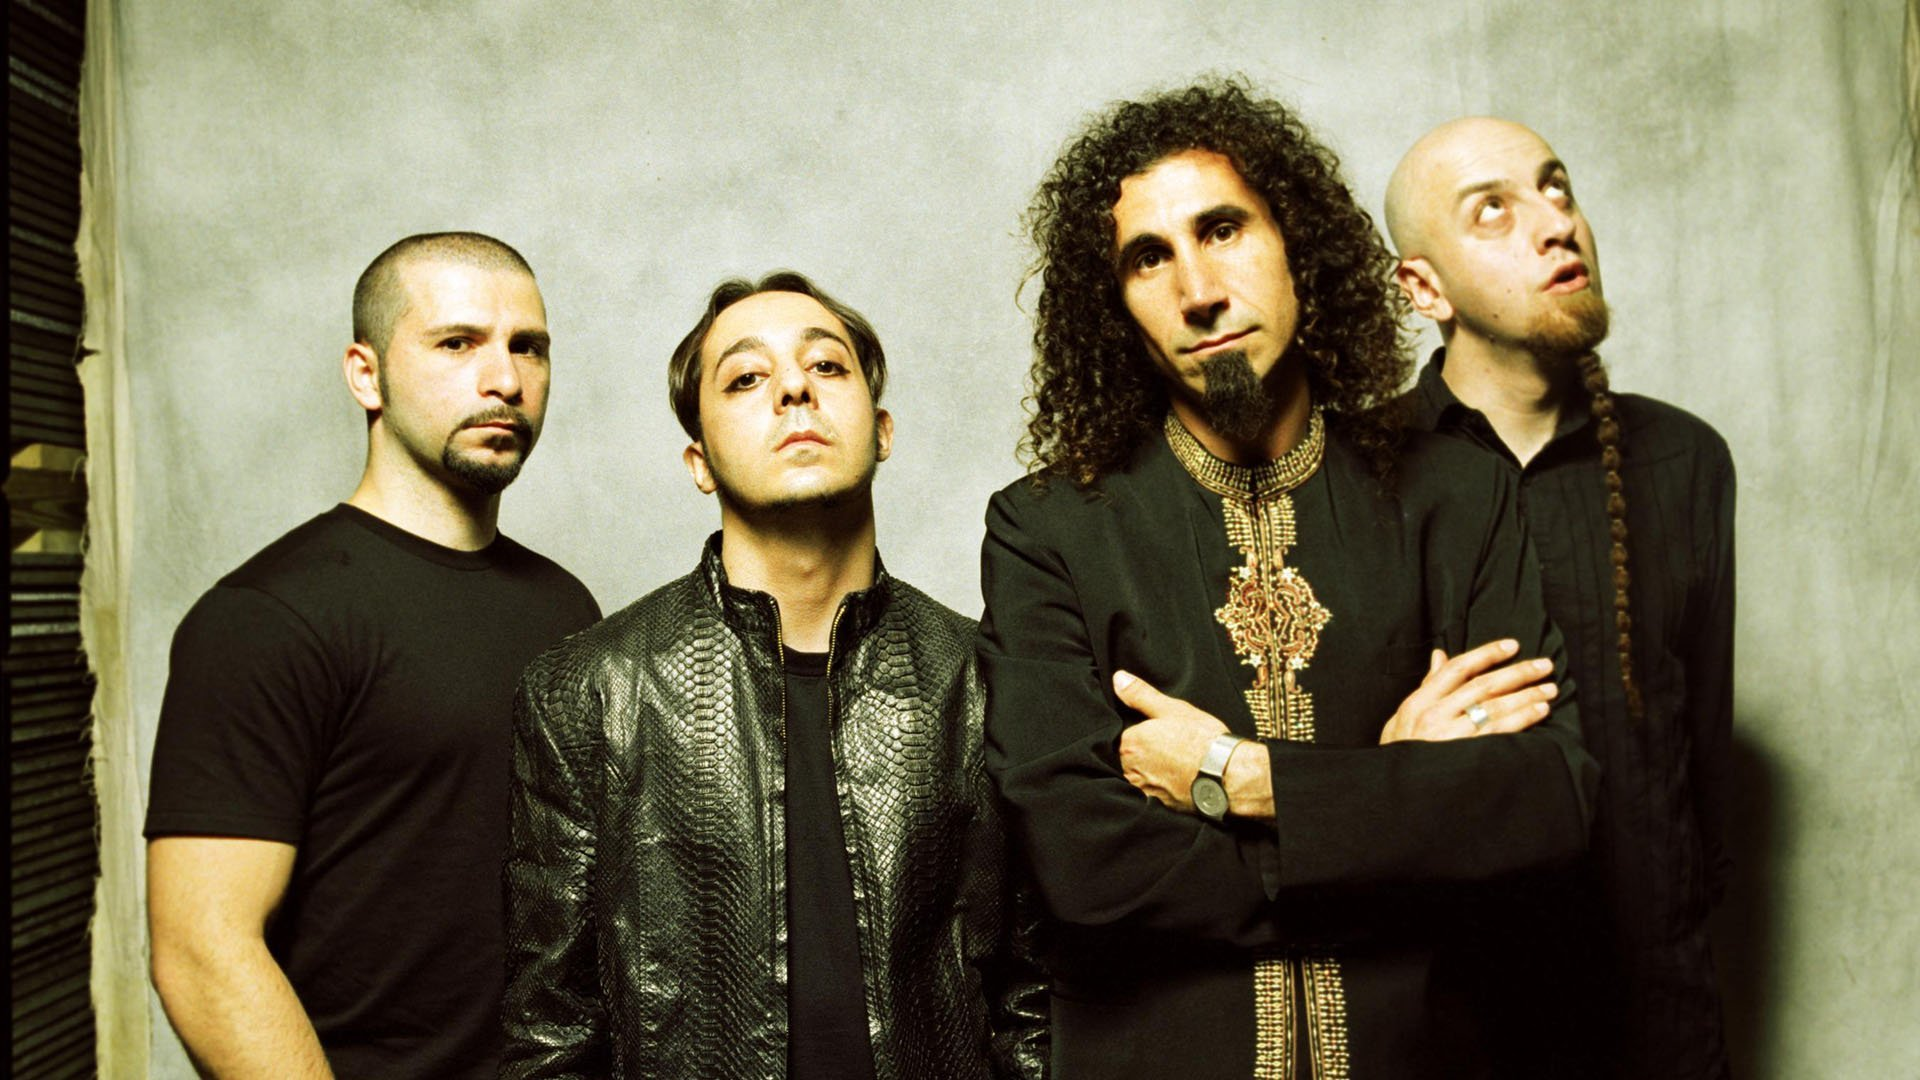 System of a Down, Faith No More, and Korn tease a post